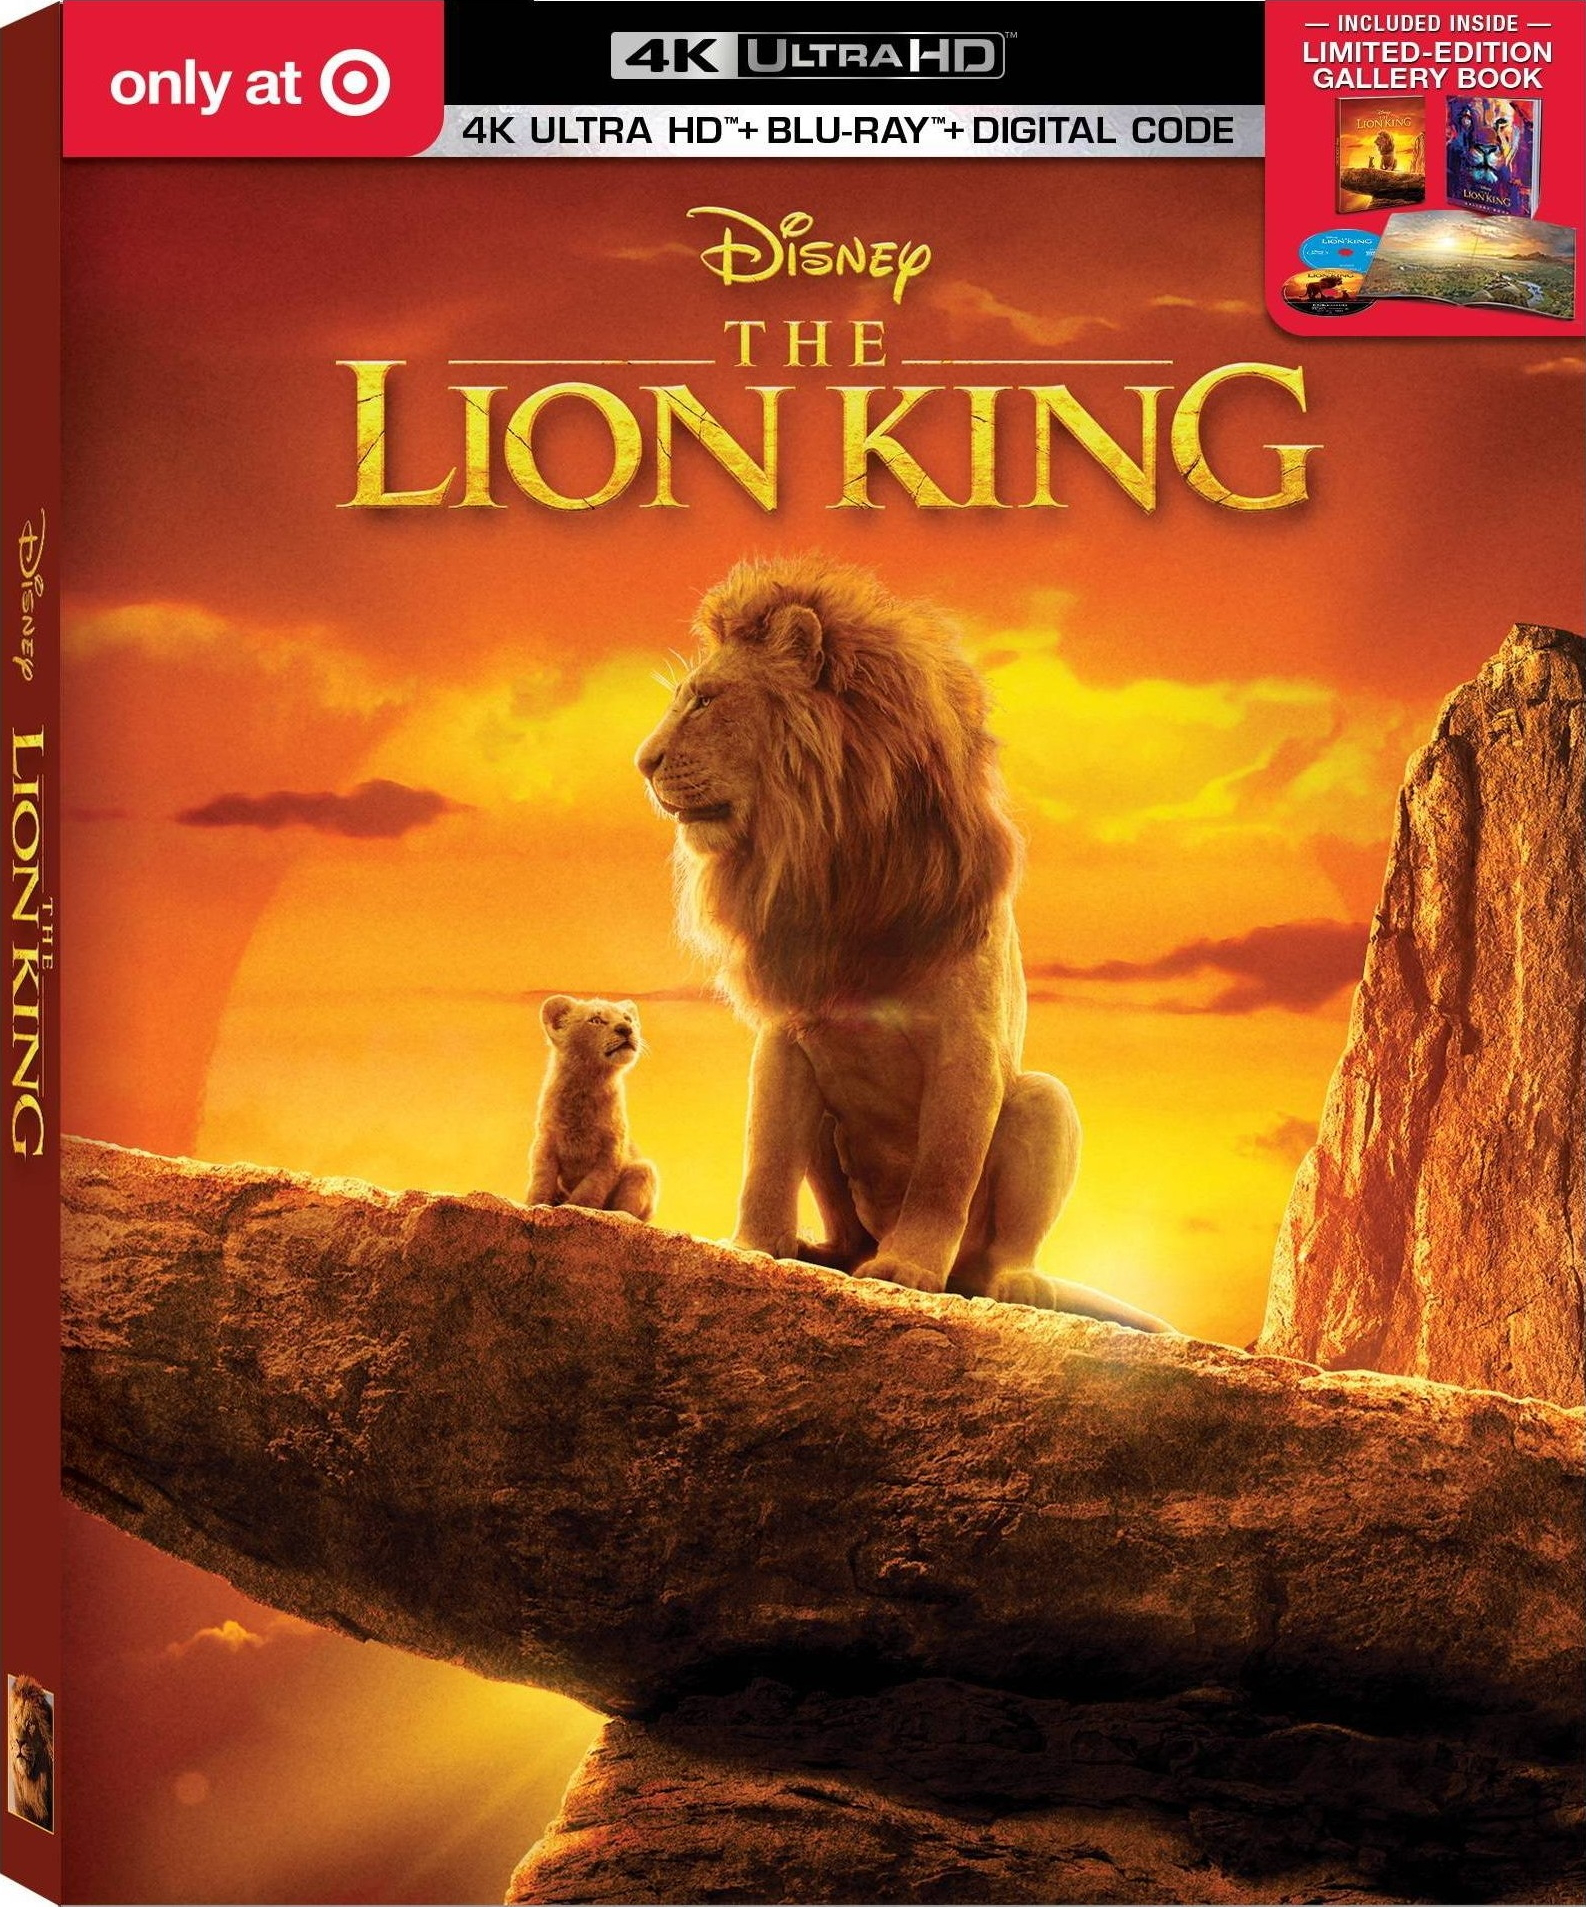 The Lion King 2019 720p BluRay